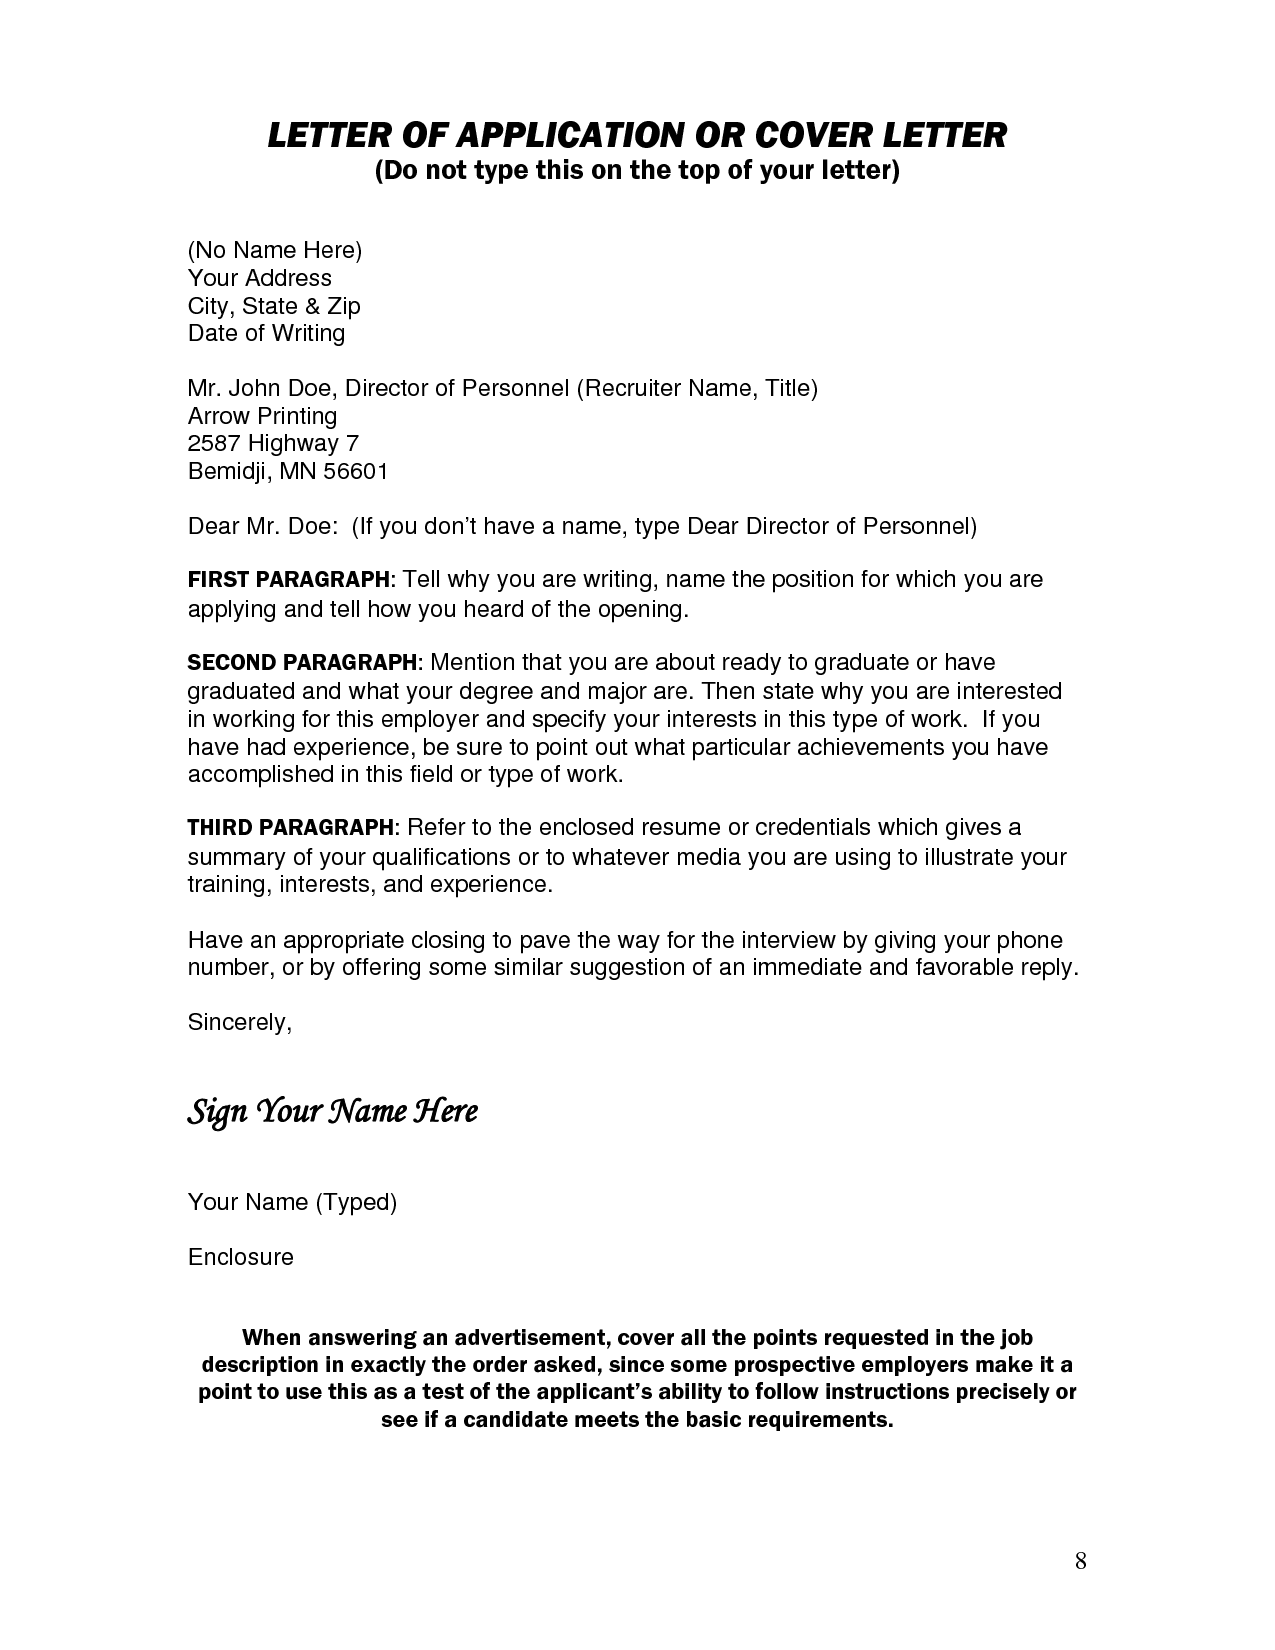 Cover Letter Template No Name 1 Cover Letter Template Sample